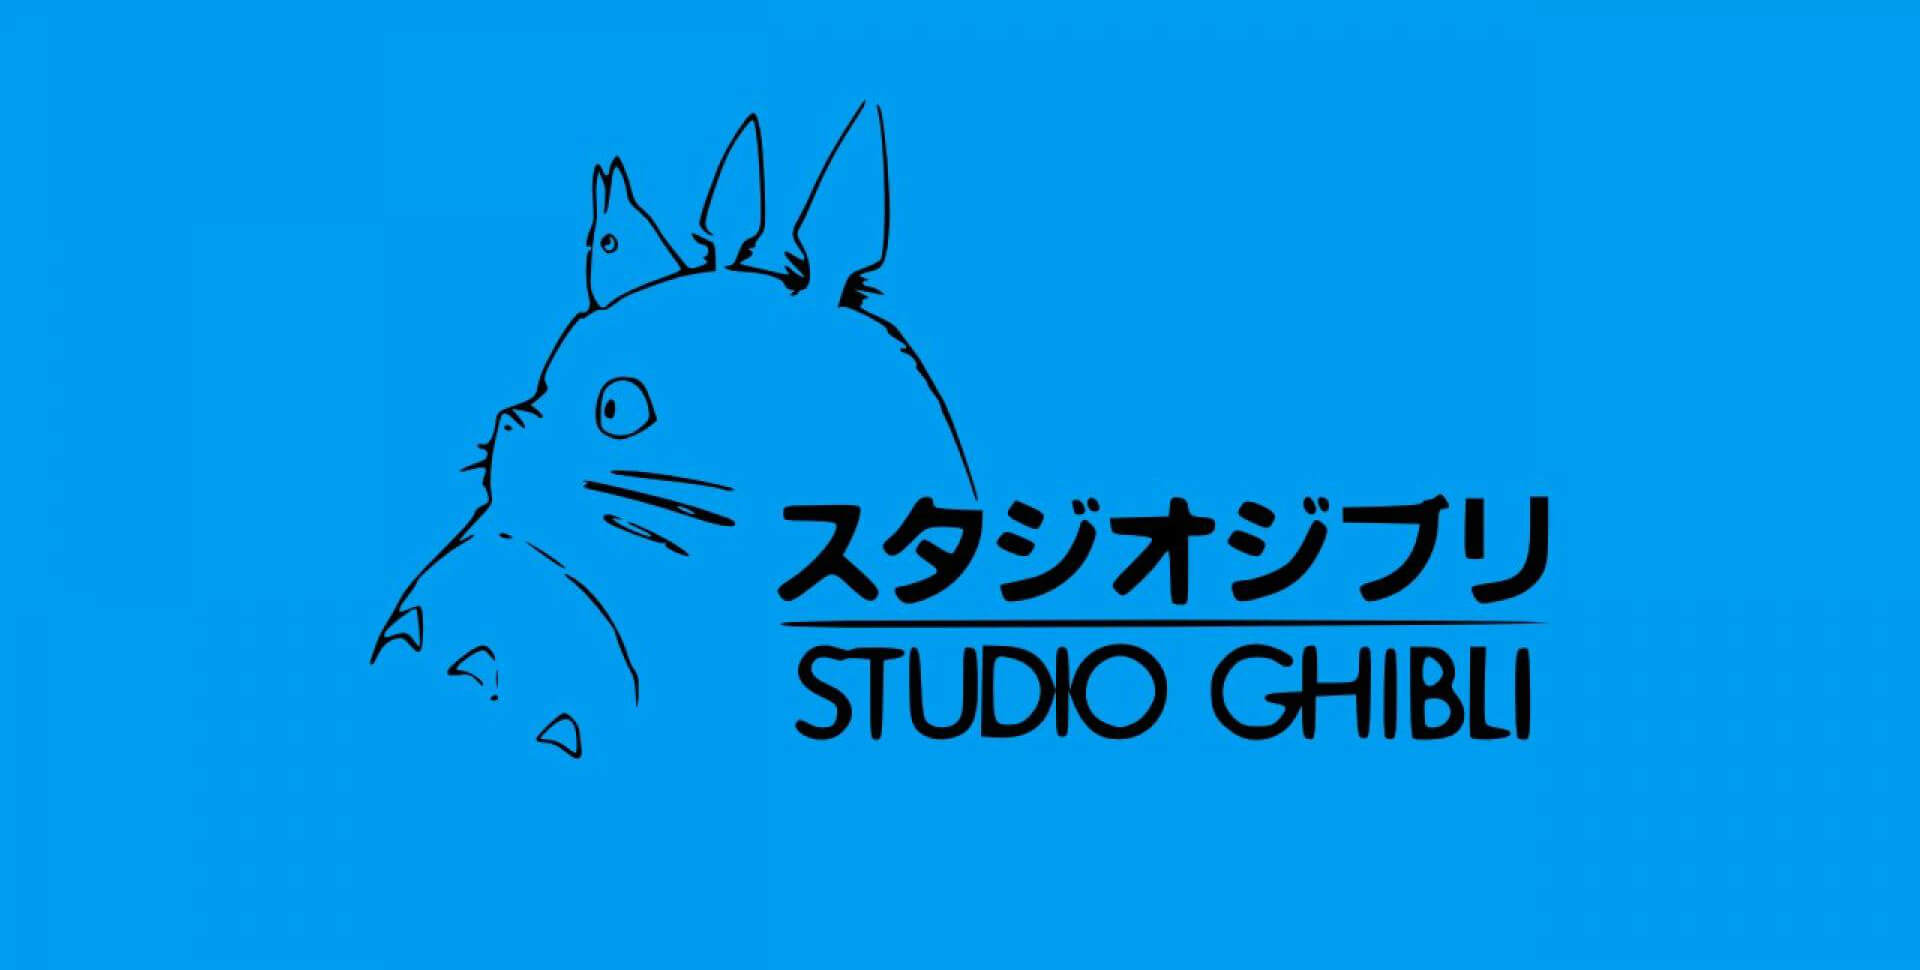 Studio Ghibli Movies Ranked from Worst to Best